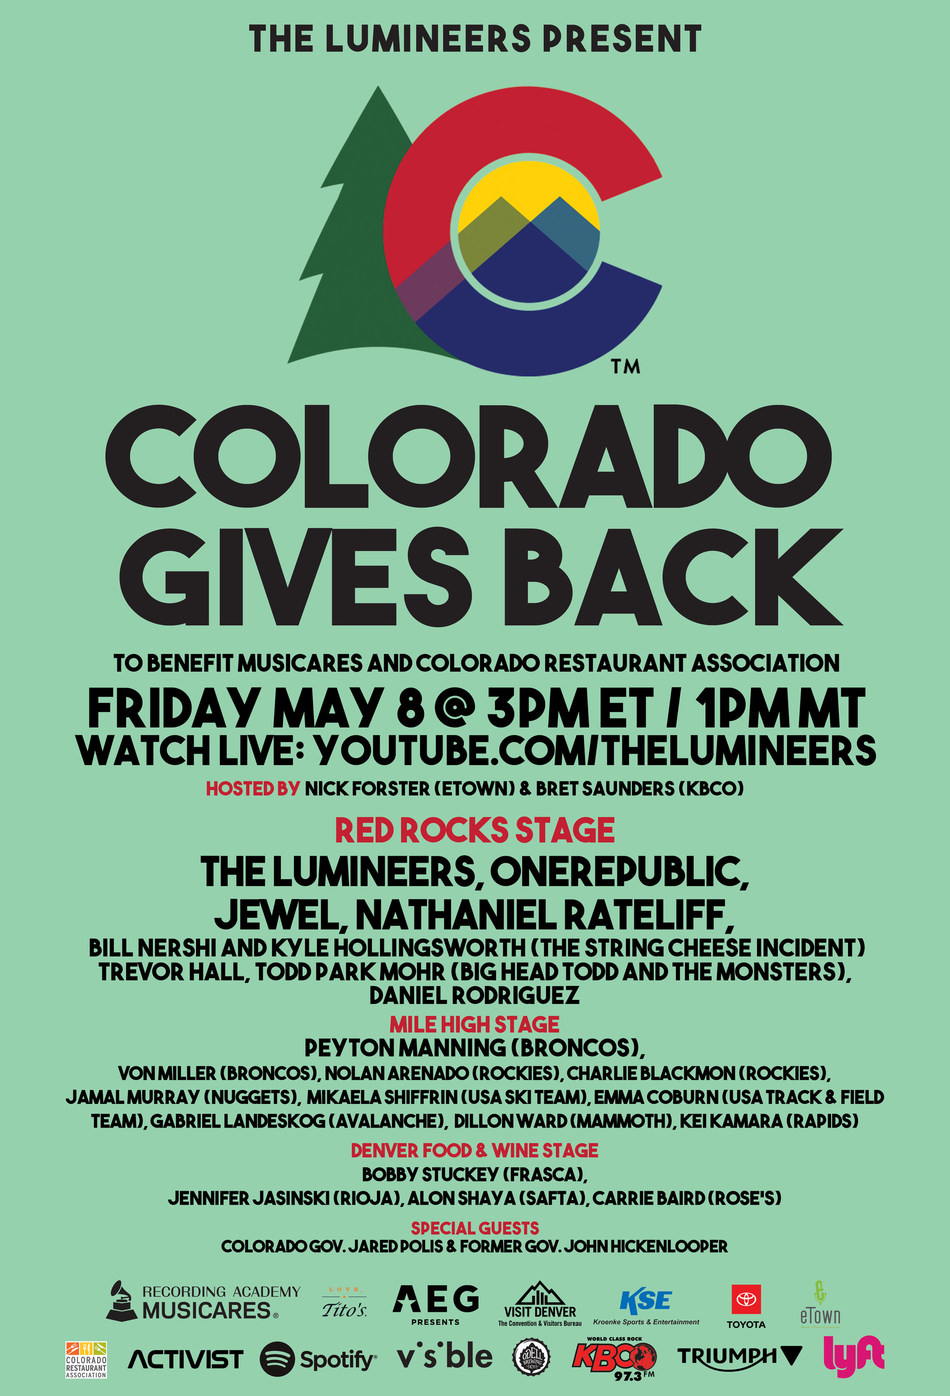 On Friday, May 8, The Lumineers will present Colorado Gives Back, a virtual benefit concert which will take place from1:00–4:00pm MT on The Lumineers YouTube Channel. The live streaming event will include performances from top recording artists, special guest appearances and more. Donations will benefit individuals in the national music community as well as those in the Colorado restaurant services industry who have lost their income and revenue due to the COVID-19 pandemic.